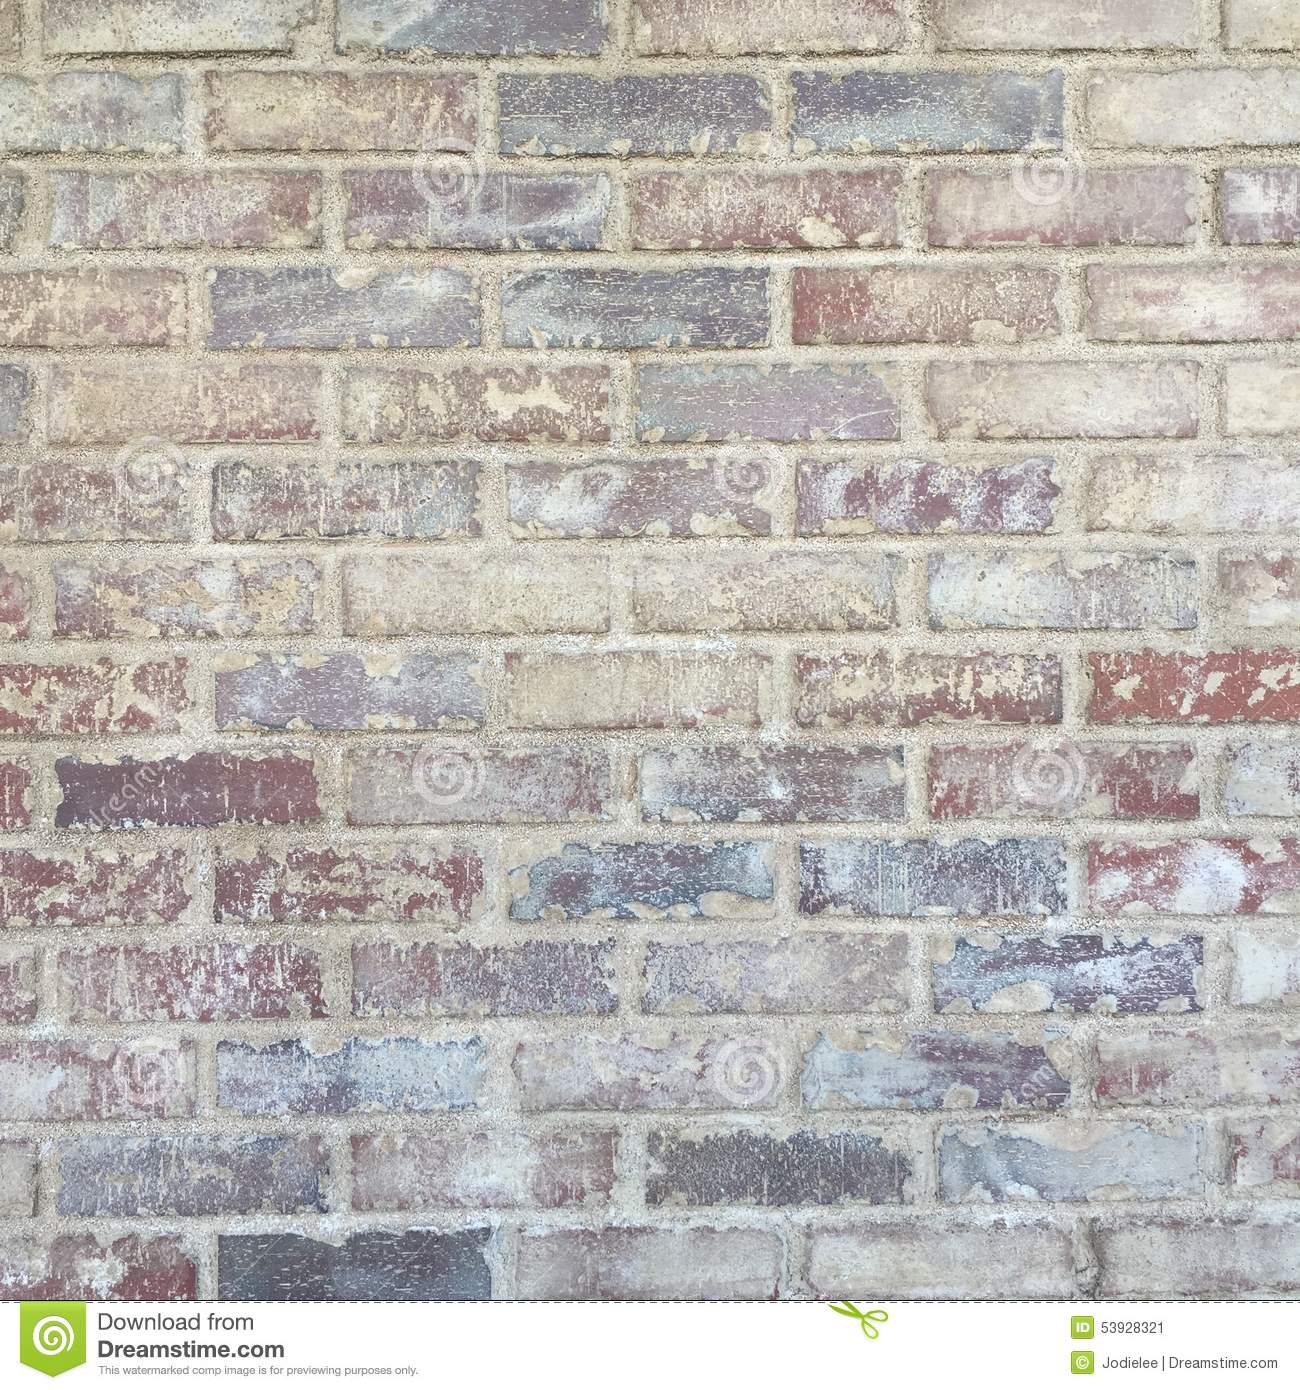 Grungy Rustic Brick Wall Background Texture